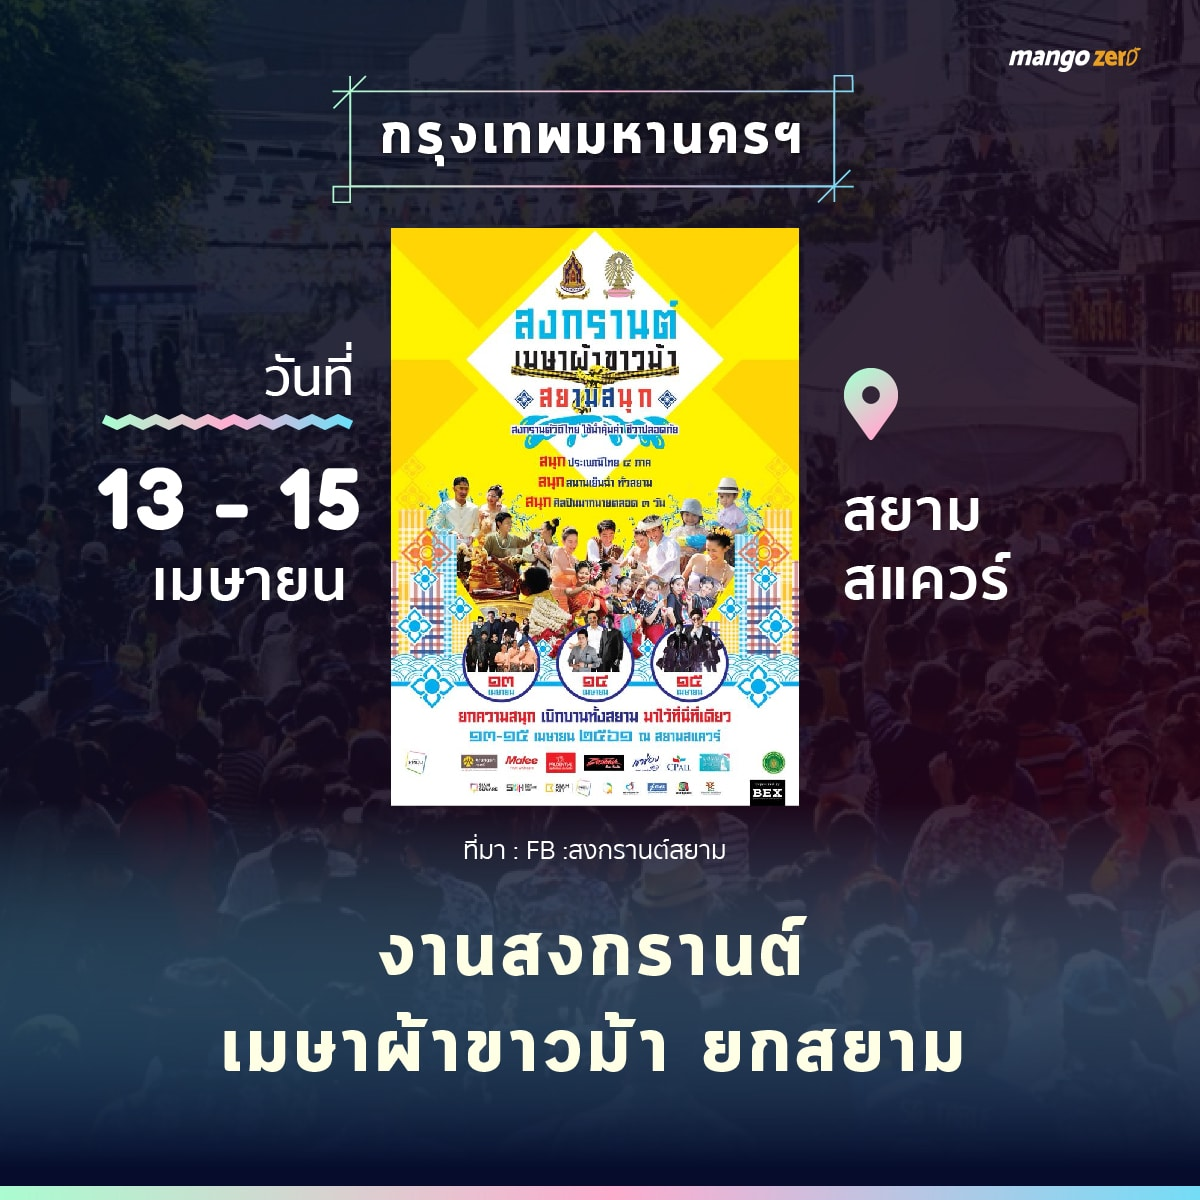 songkran-2018-events-thailand-01